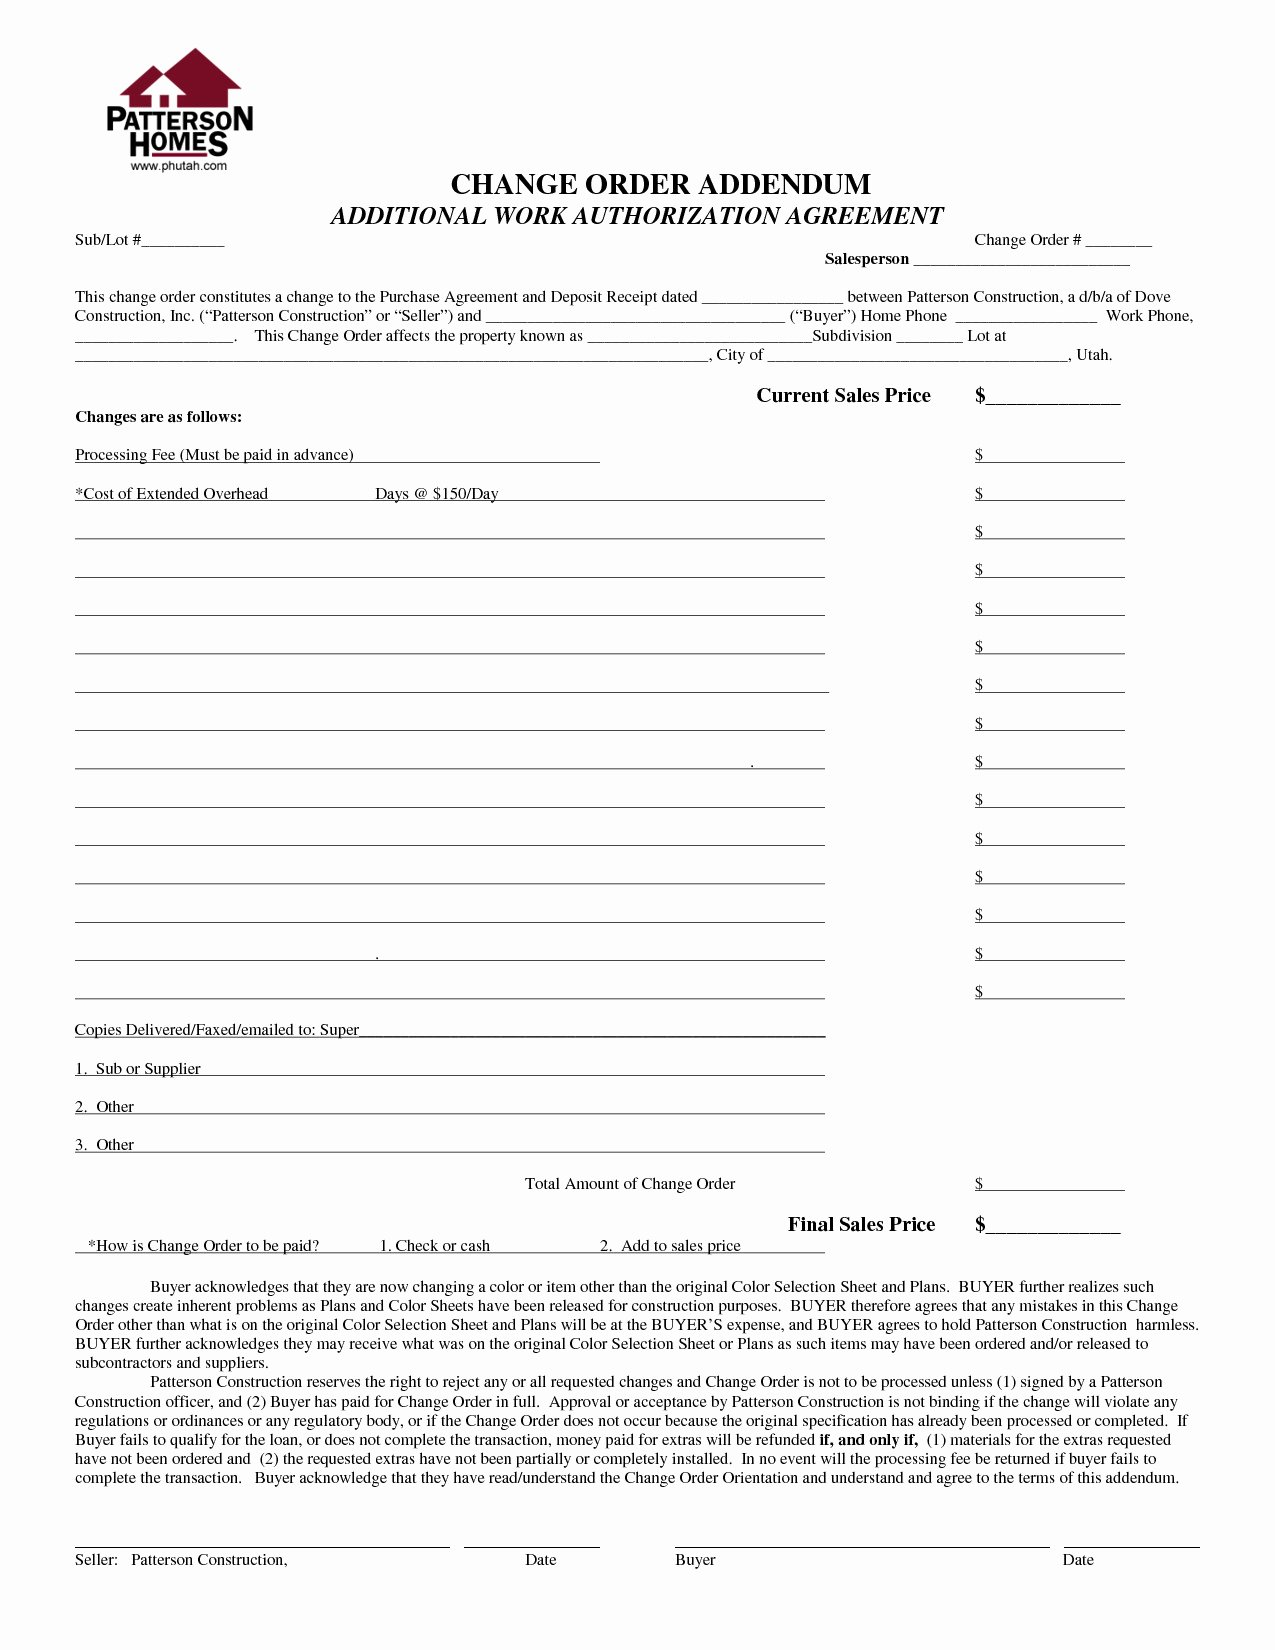 Change order forms Template Lovely 19 Construction Work order Steamtraaleren Borgenes